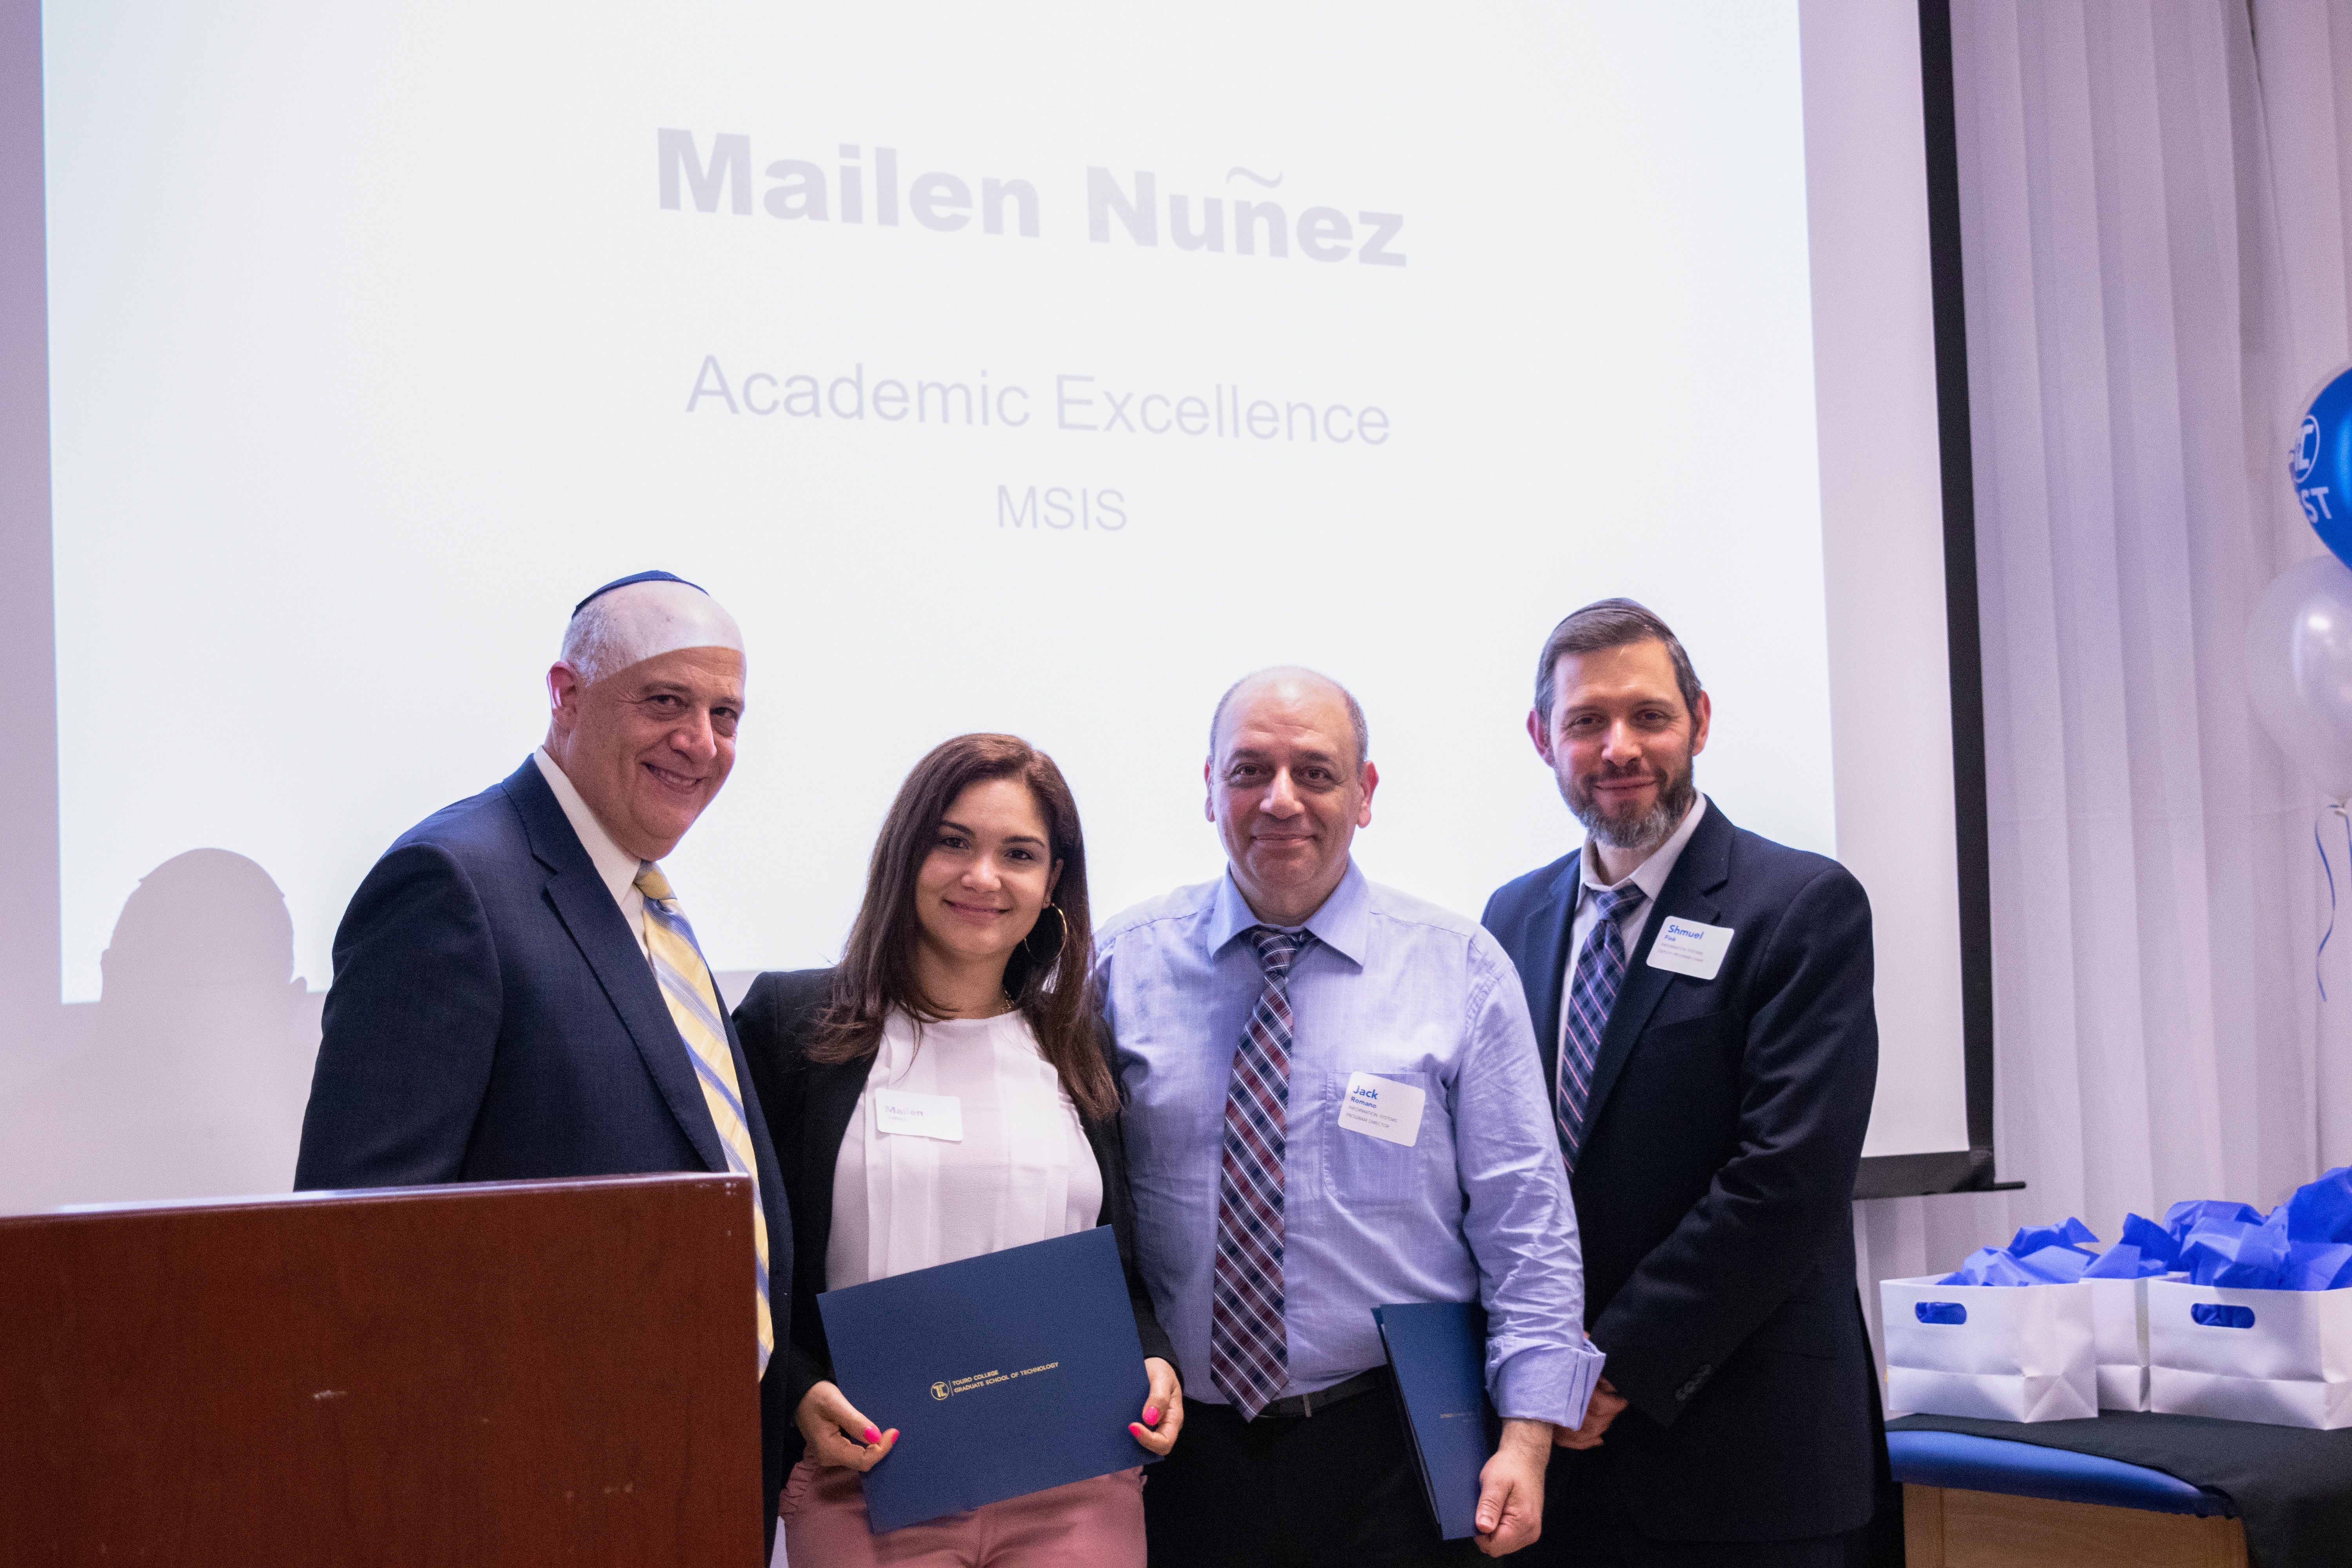 Mailen Nuñez Graduation Dinner 2018 Touro Graduate School of Technology